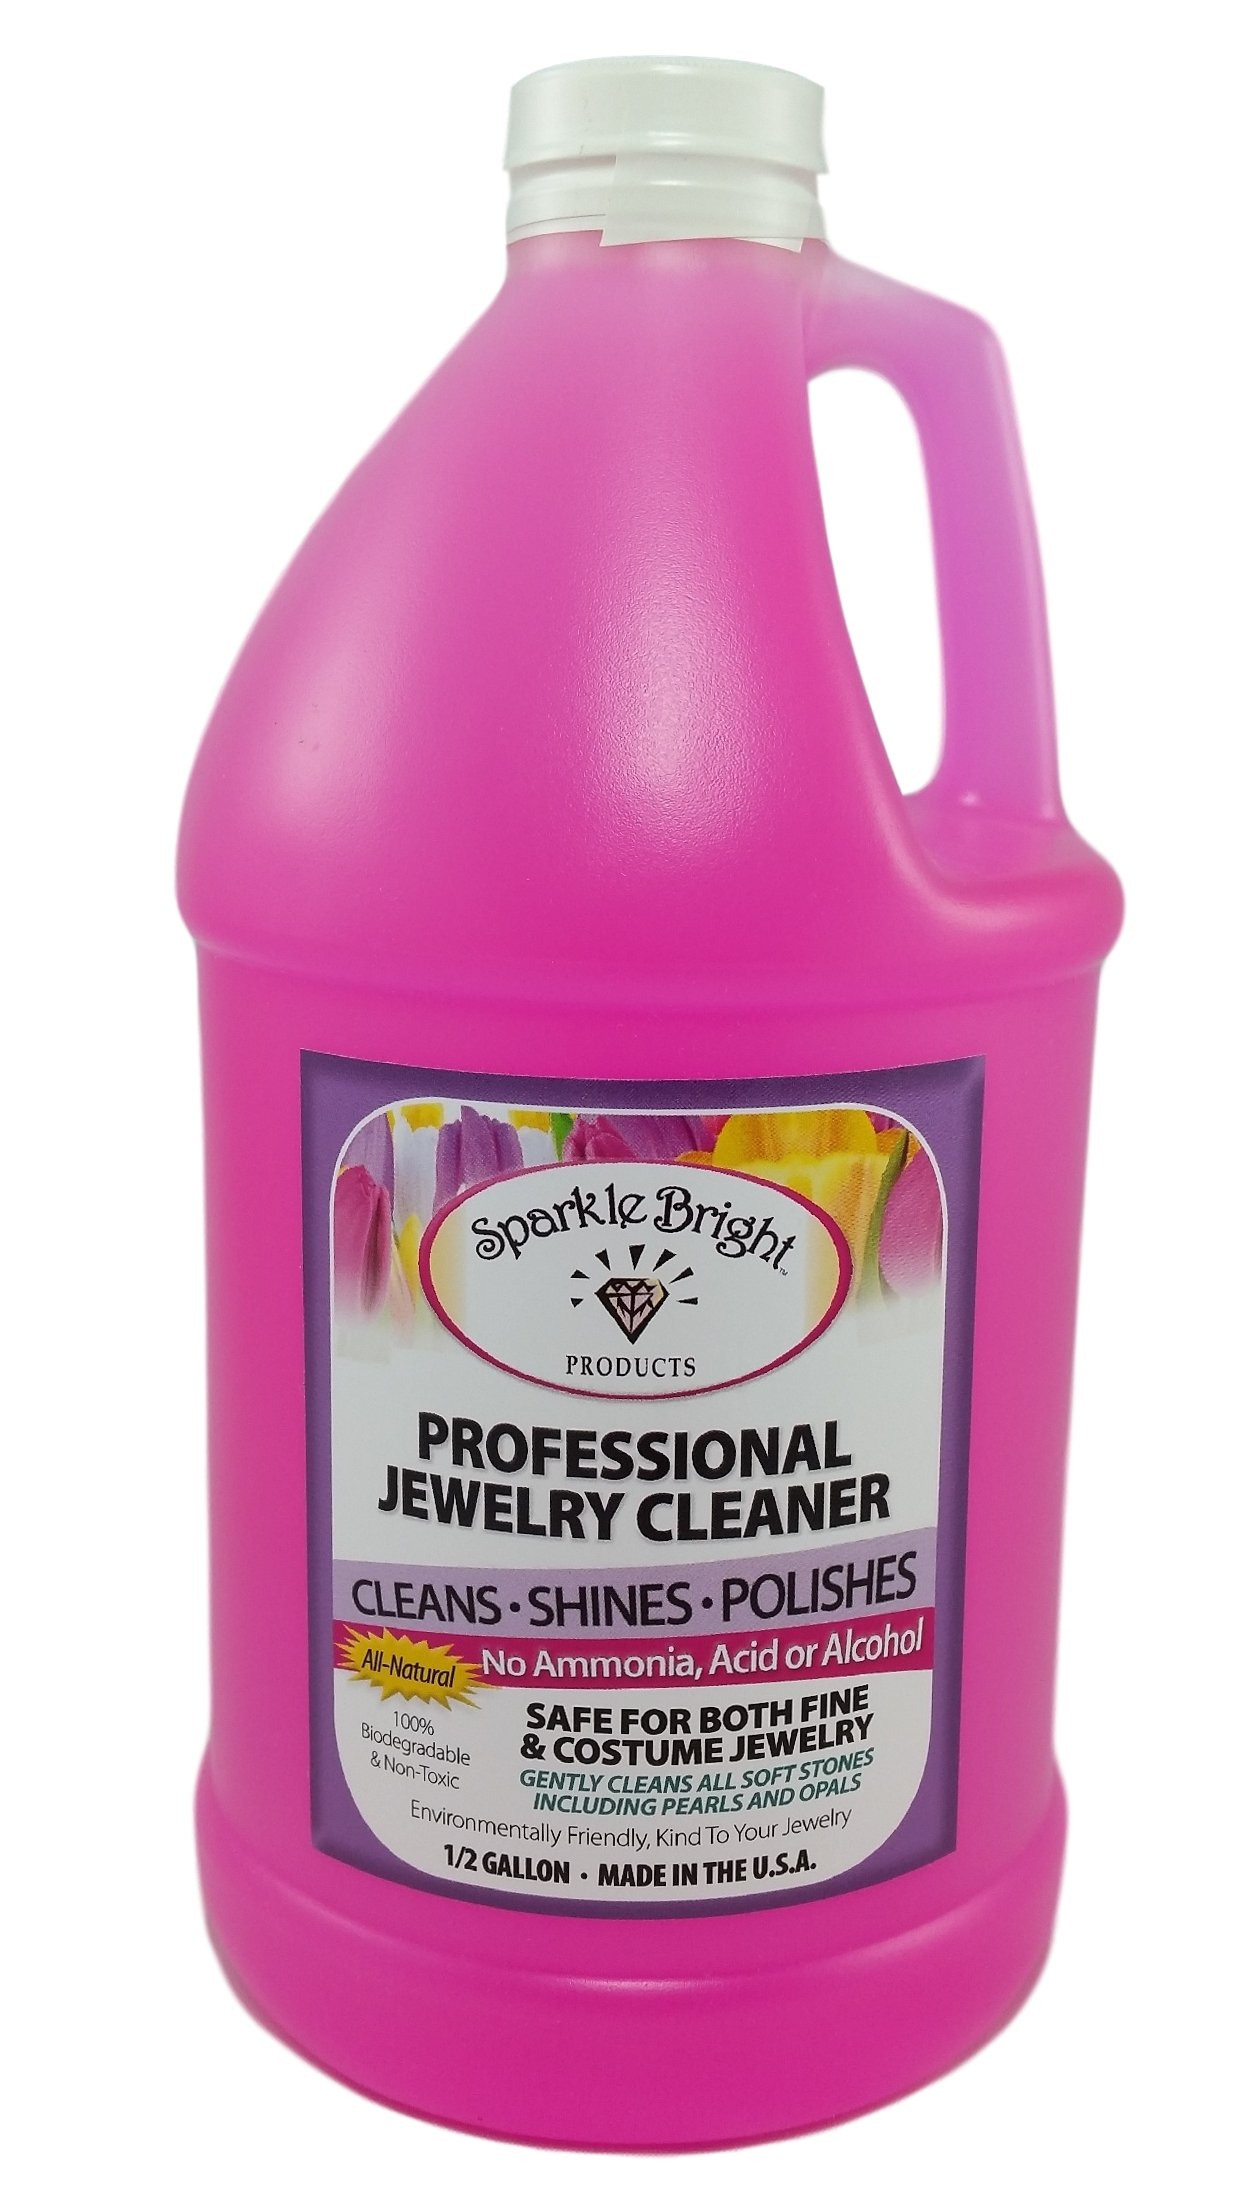 Sparkle Bright All-Natural Jewelry Cleaner Solution - Half Gallon (64oz.) | Jewelry Cleaning for Ultrasonic, Diamonds, Fine, Costume, Designer, Fashion Jewelry